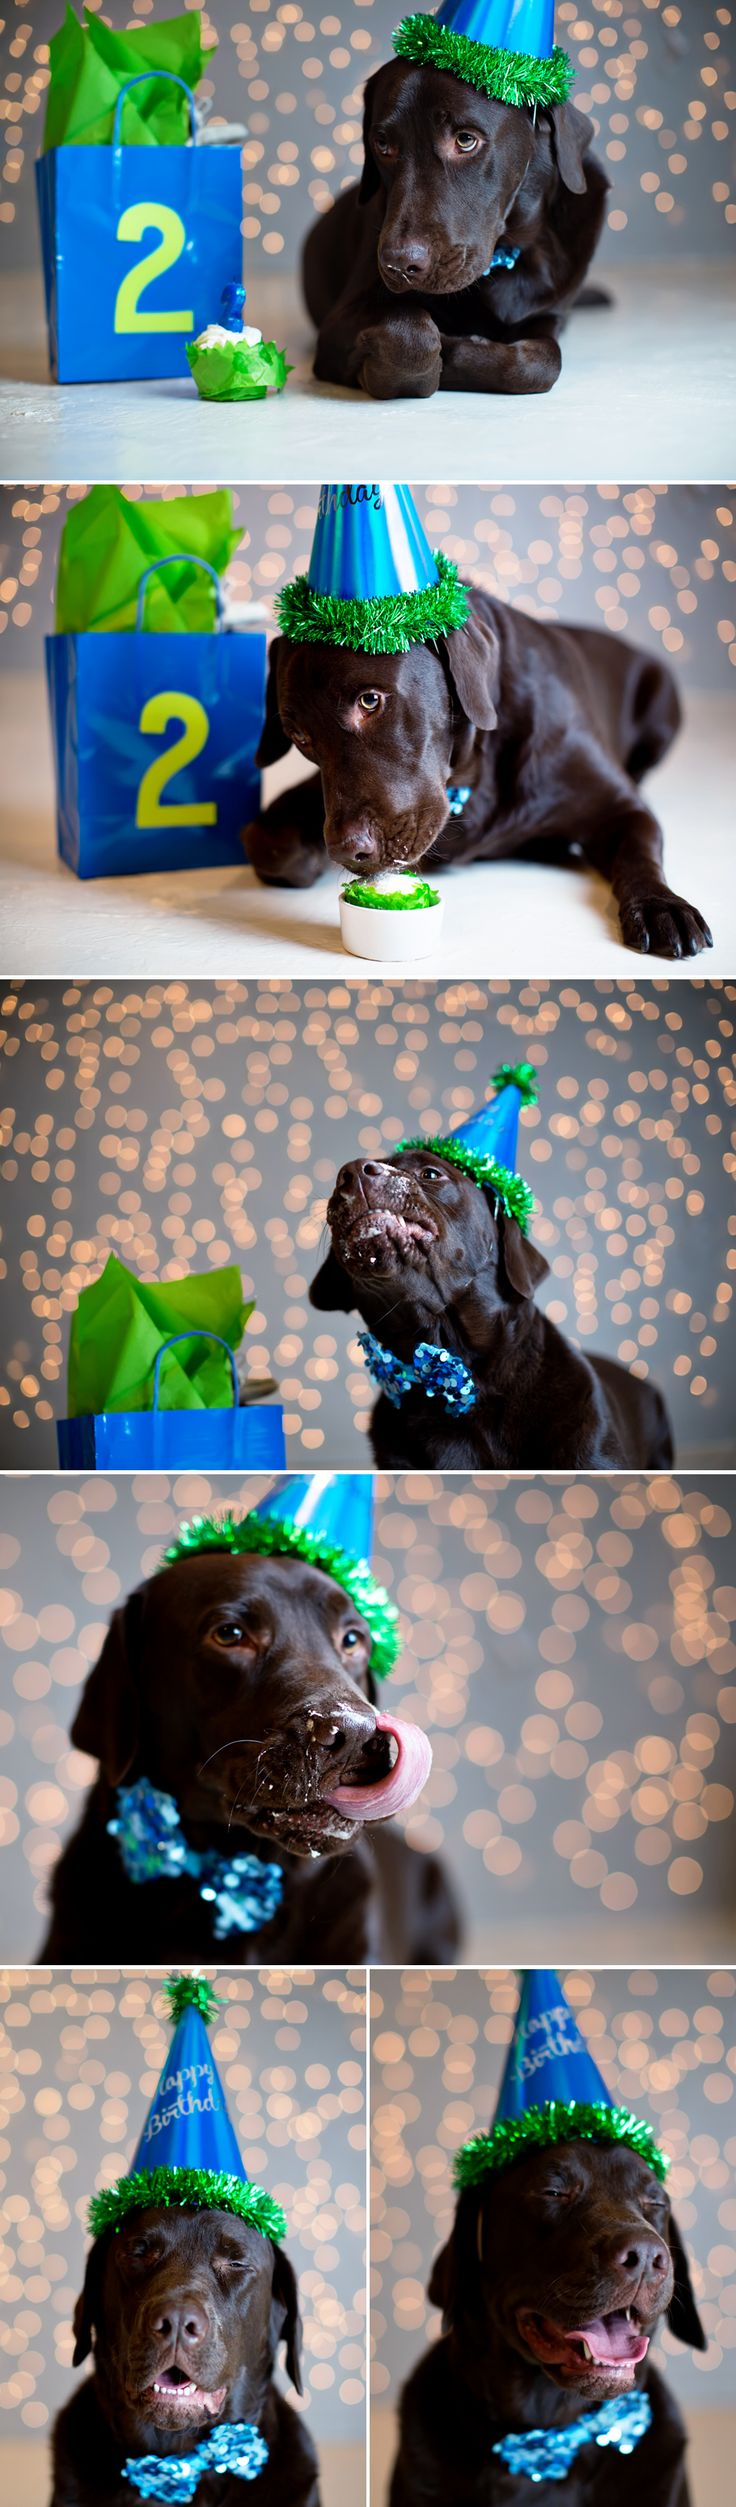 doggie birthday photo session PRECIOUS!  I'll have to do this.  My boyfriend's dog birthday is on Sunday.  Little Putt.